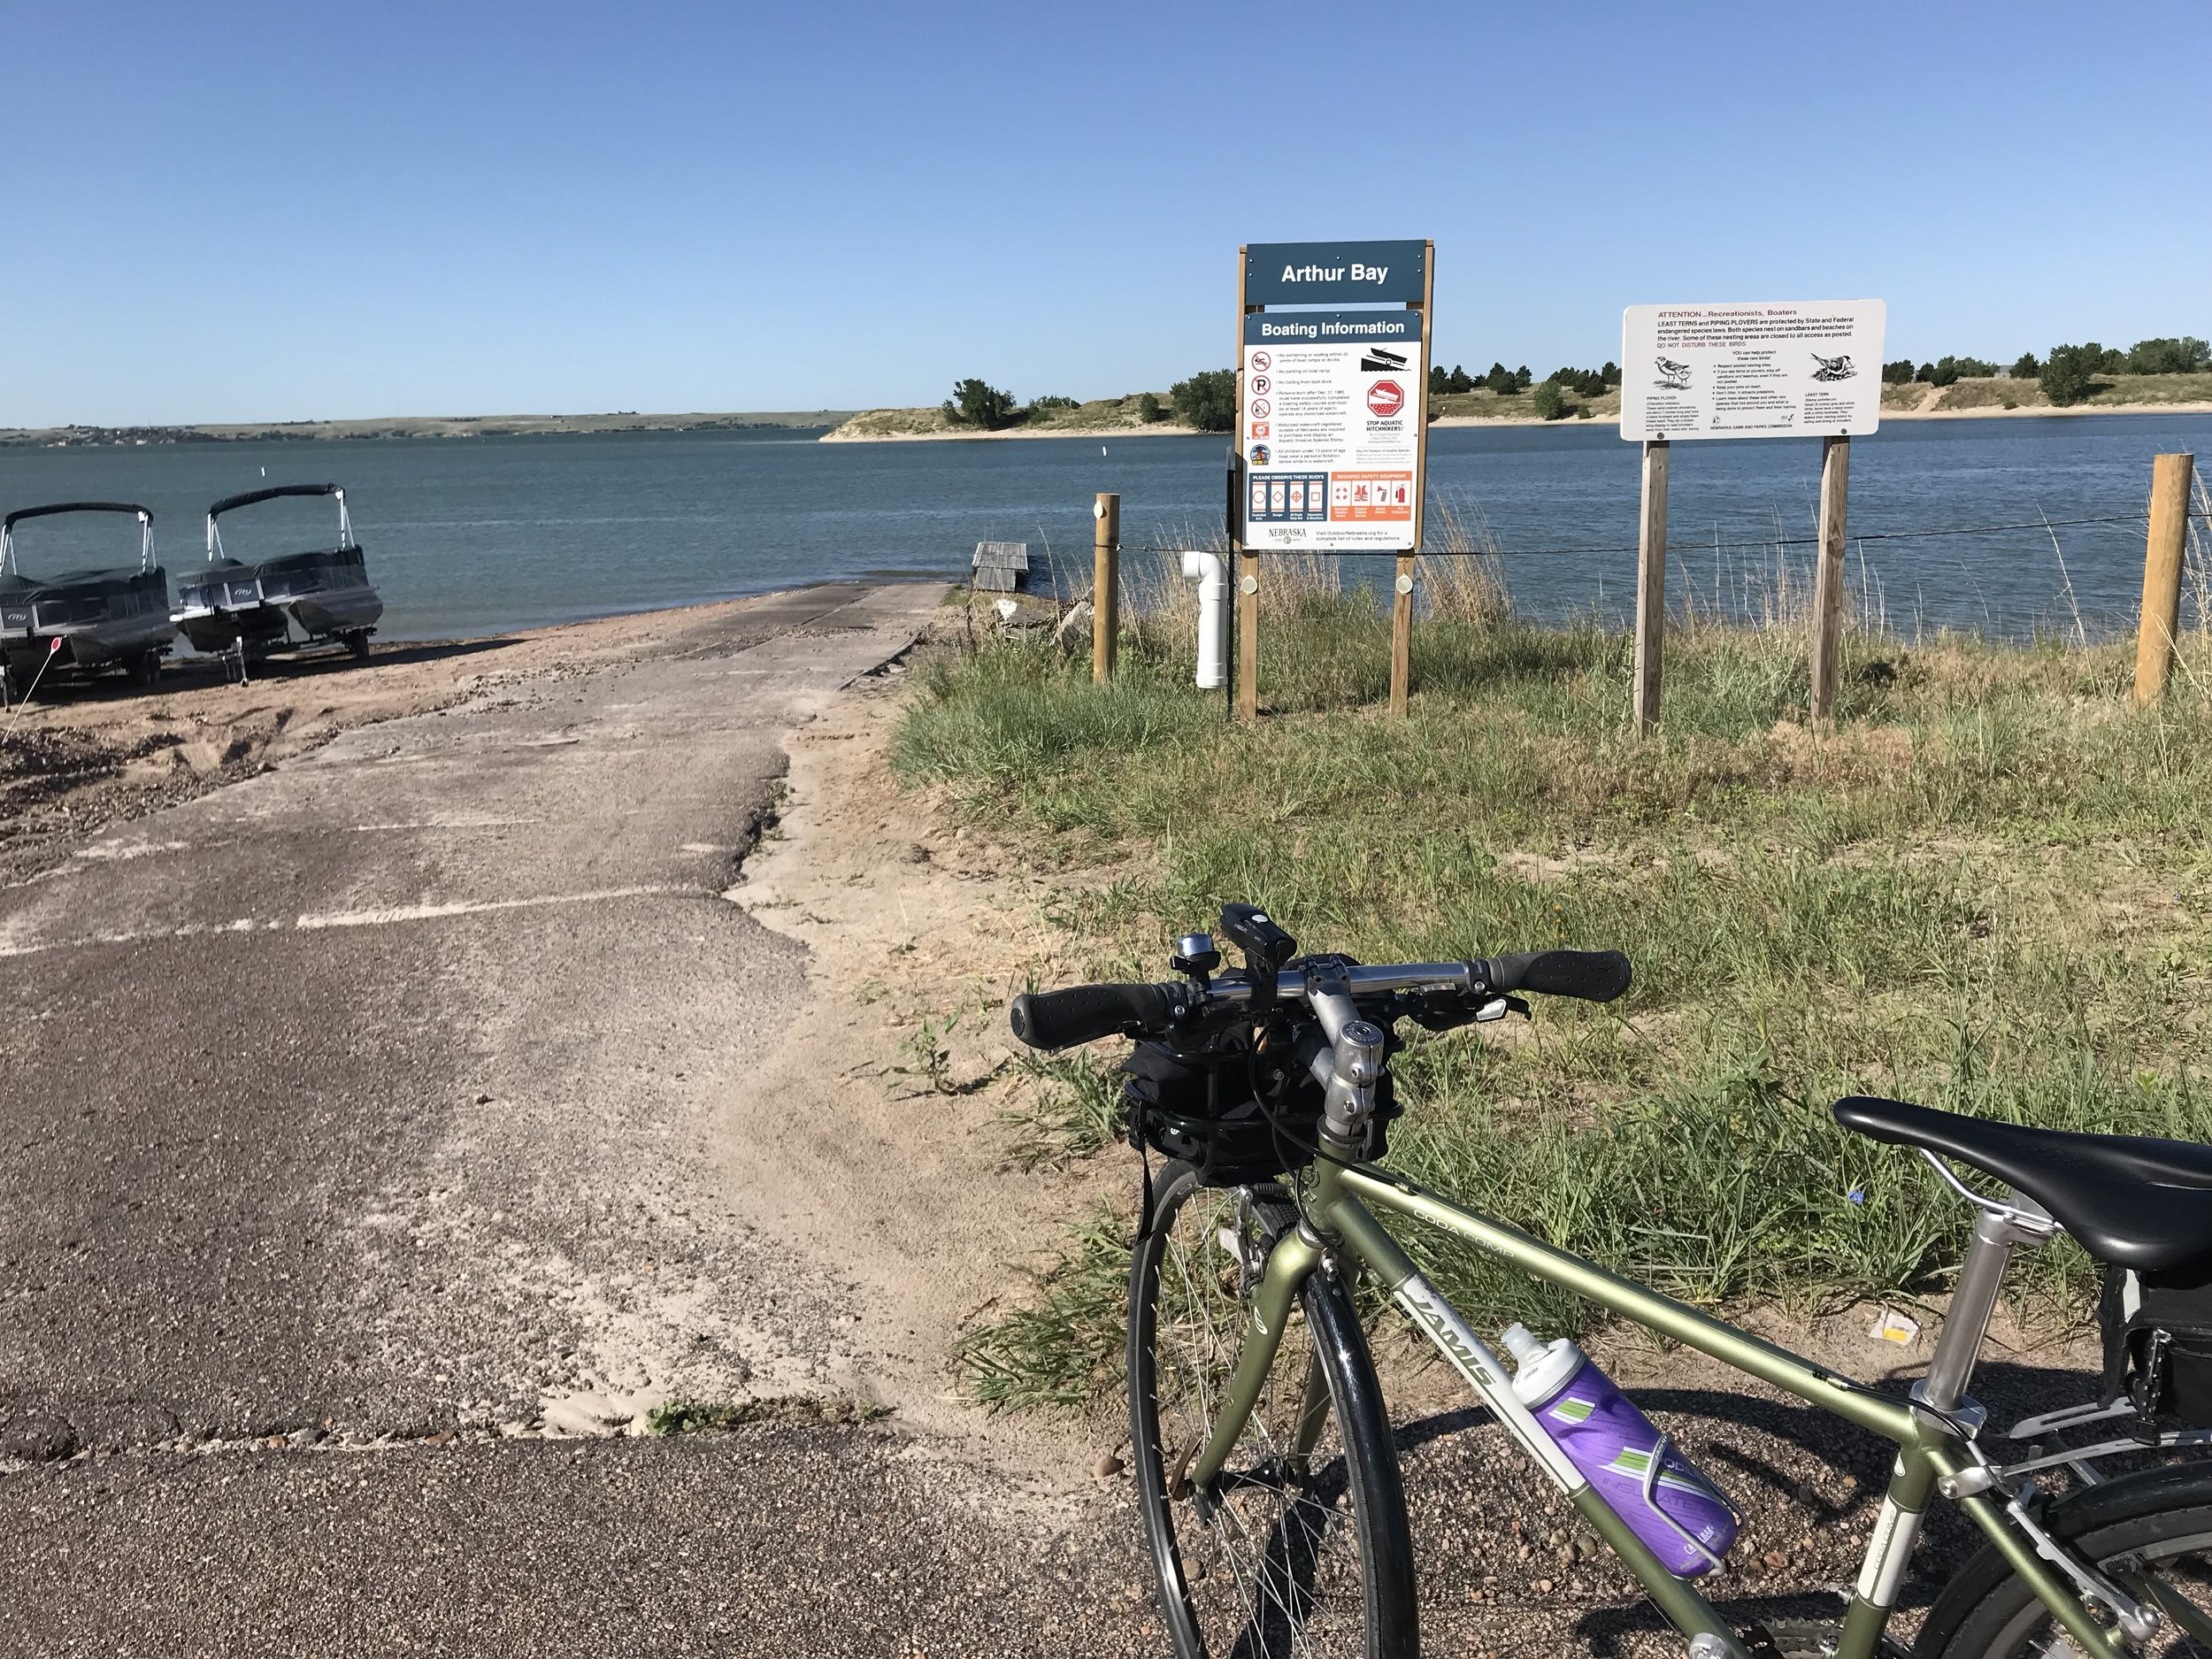 Sage was the perfect mount for exploring around Lake McConaughy